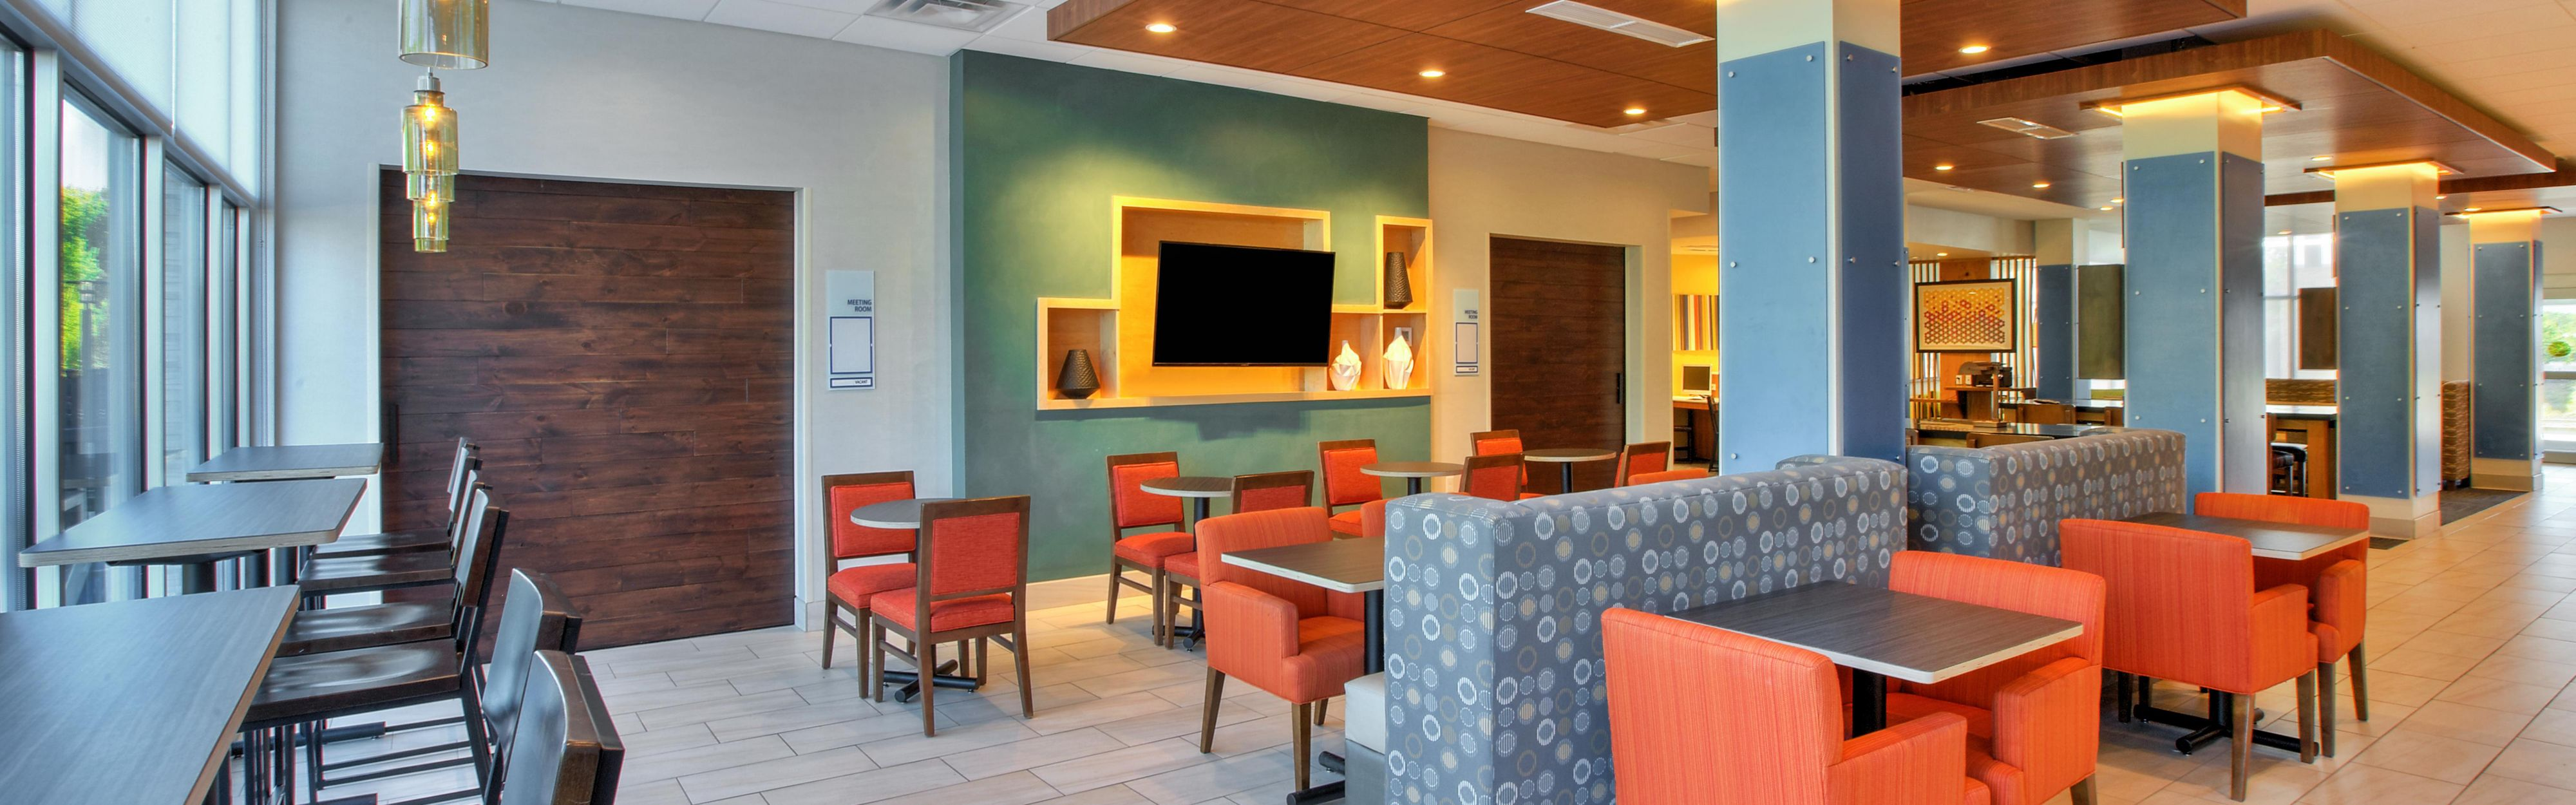 Holiday Inn Express New Castle image 3